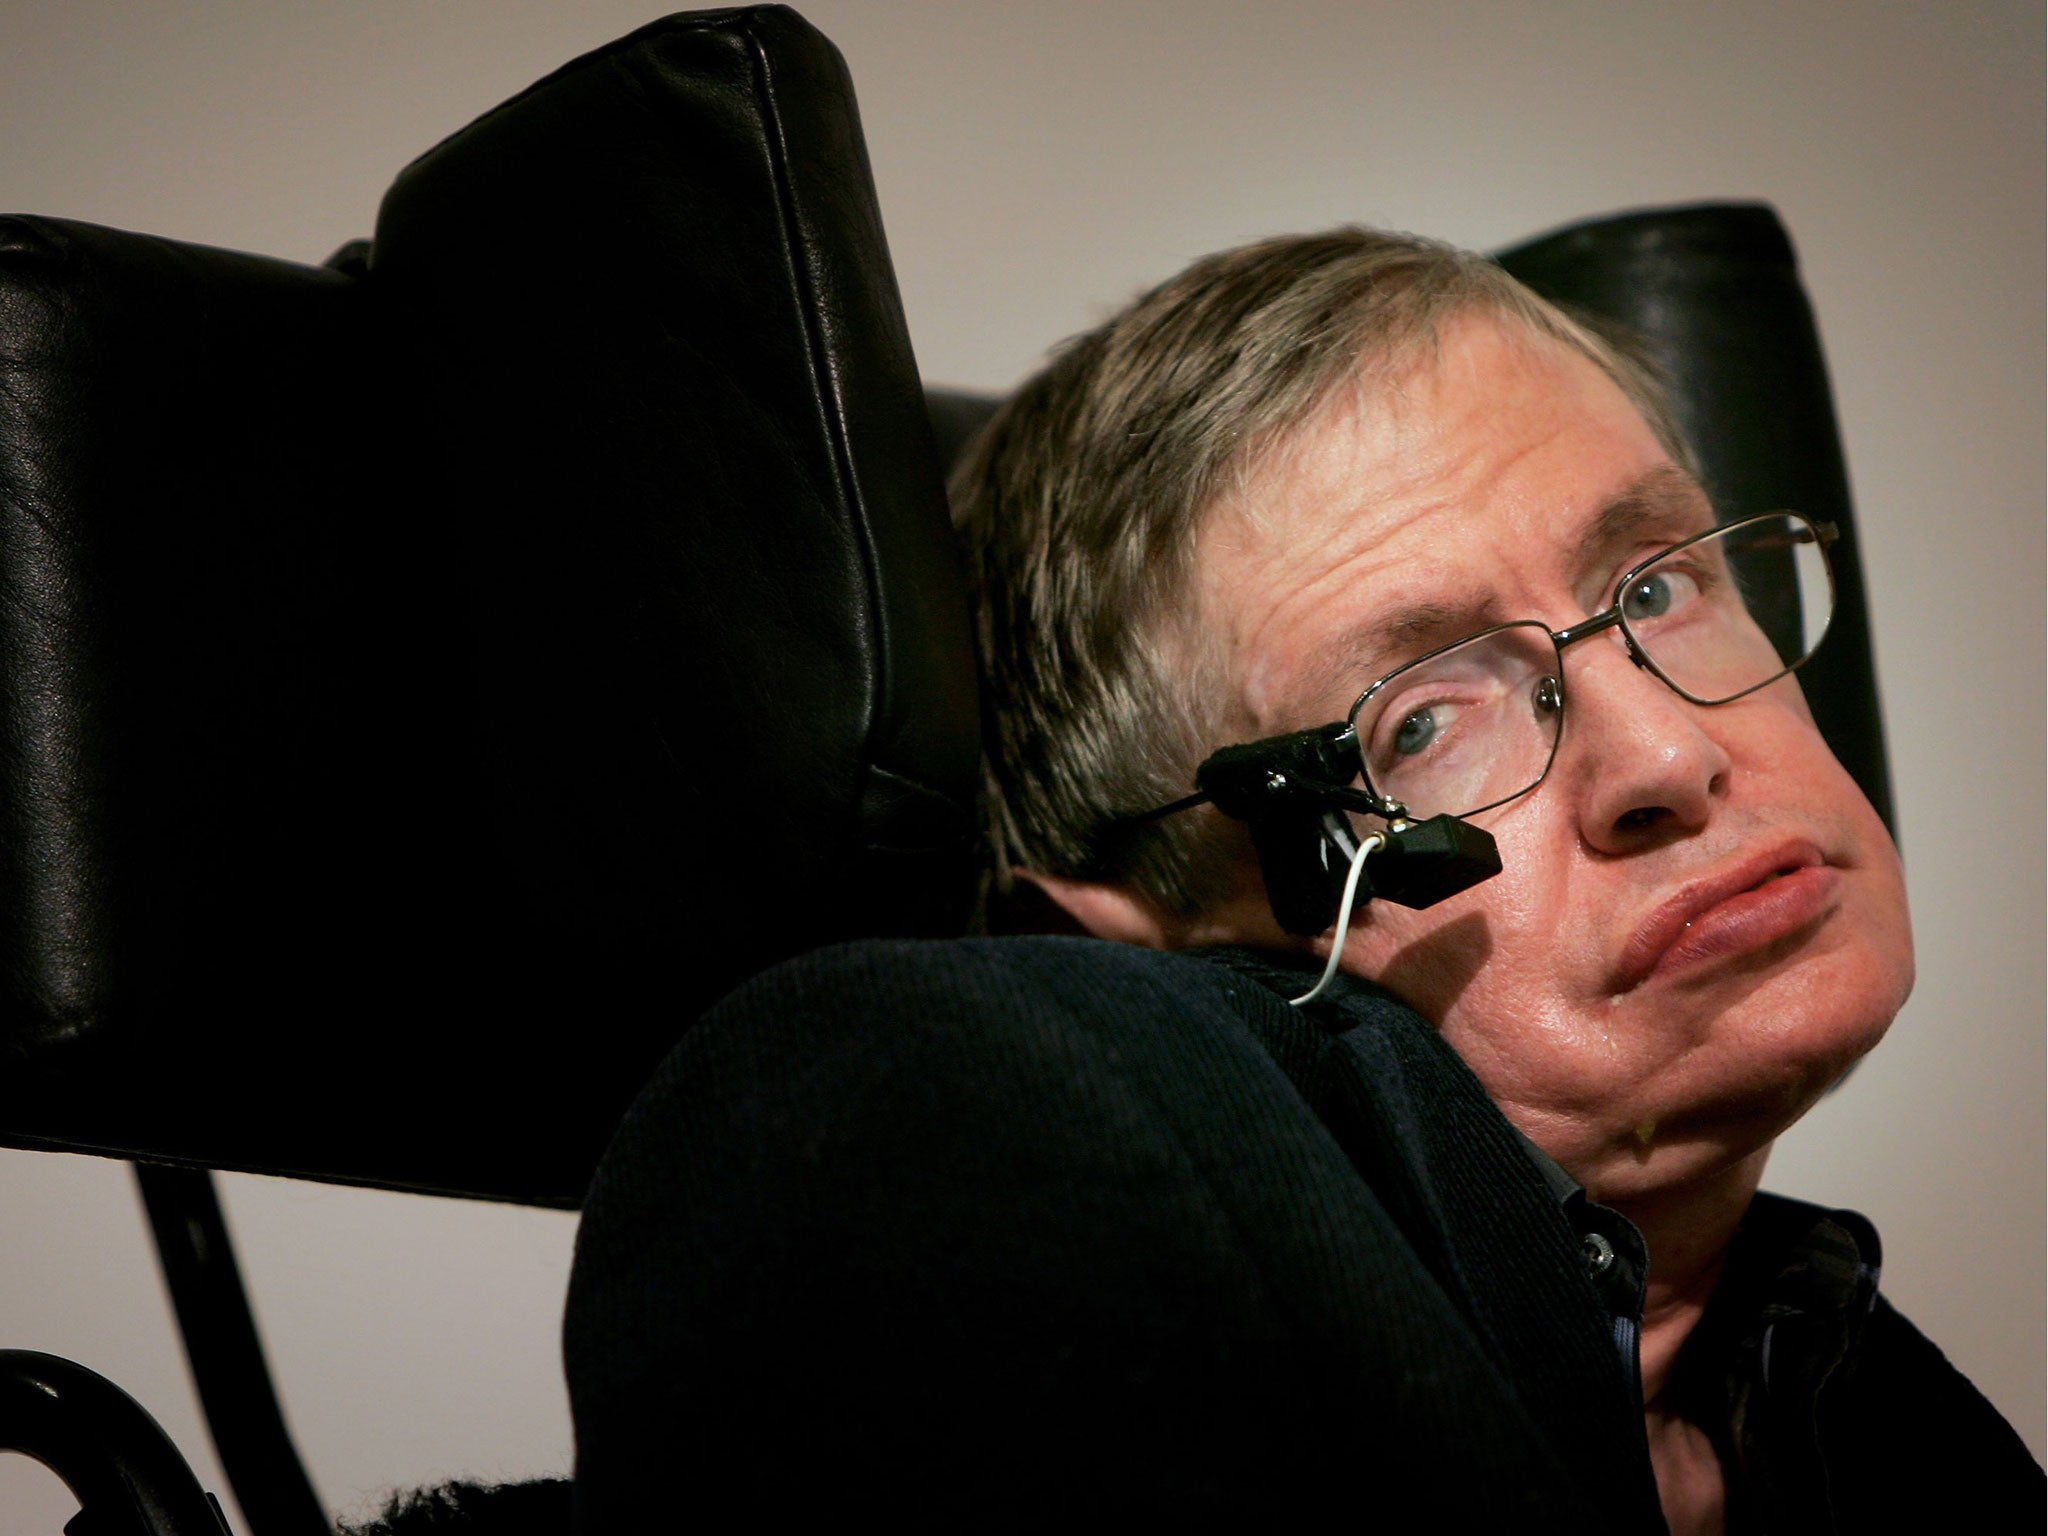 Stephen Hawking - highest IQ